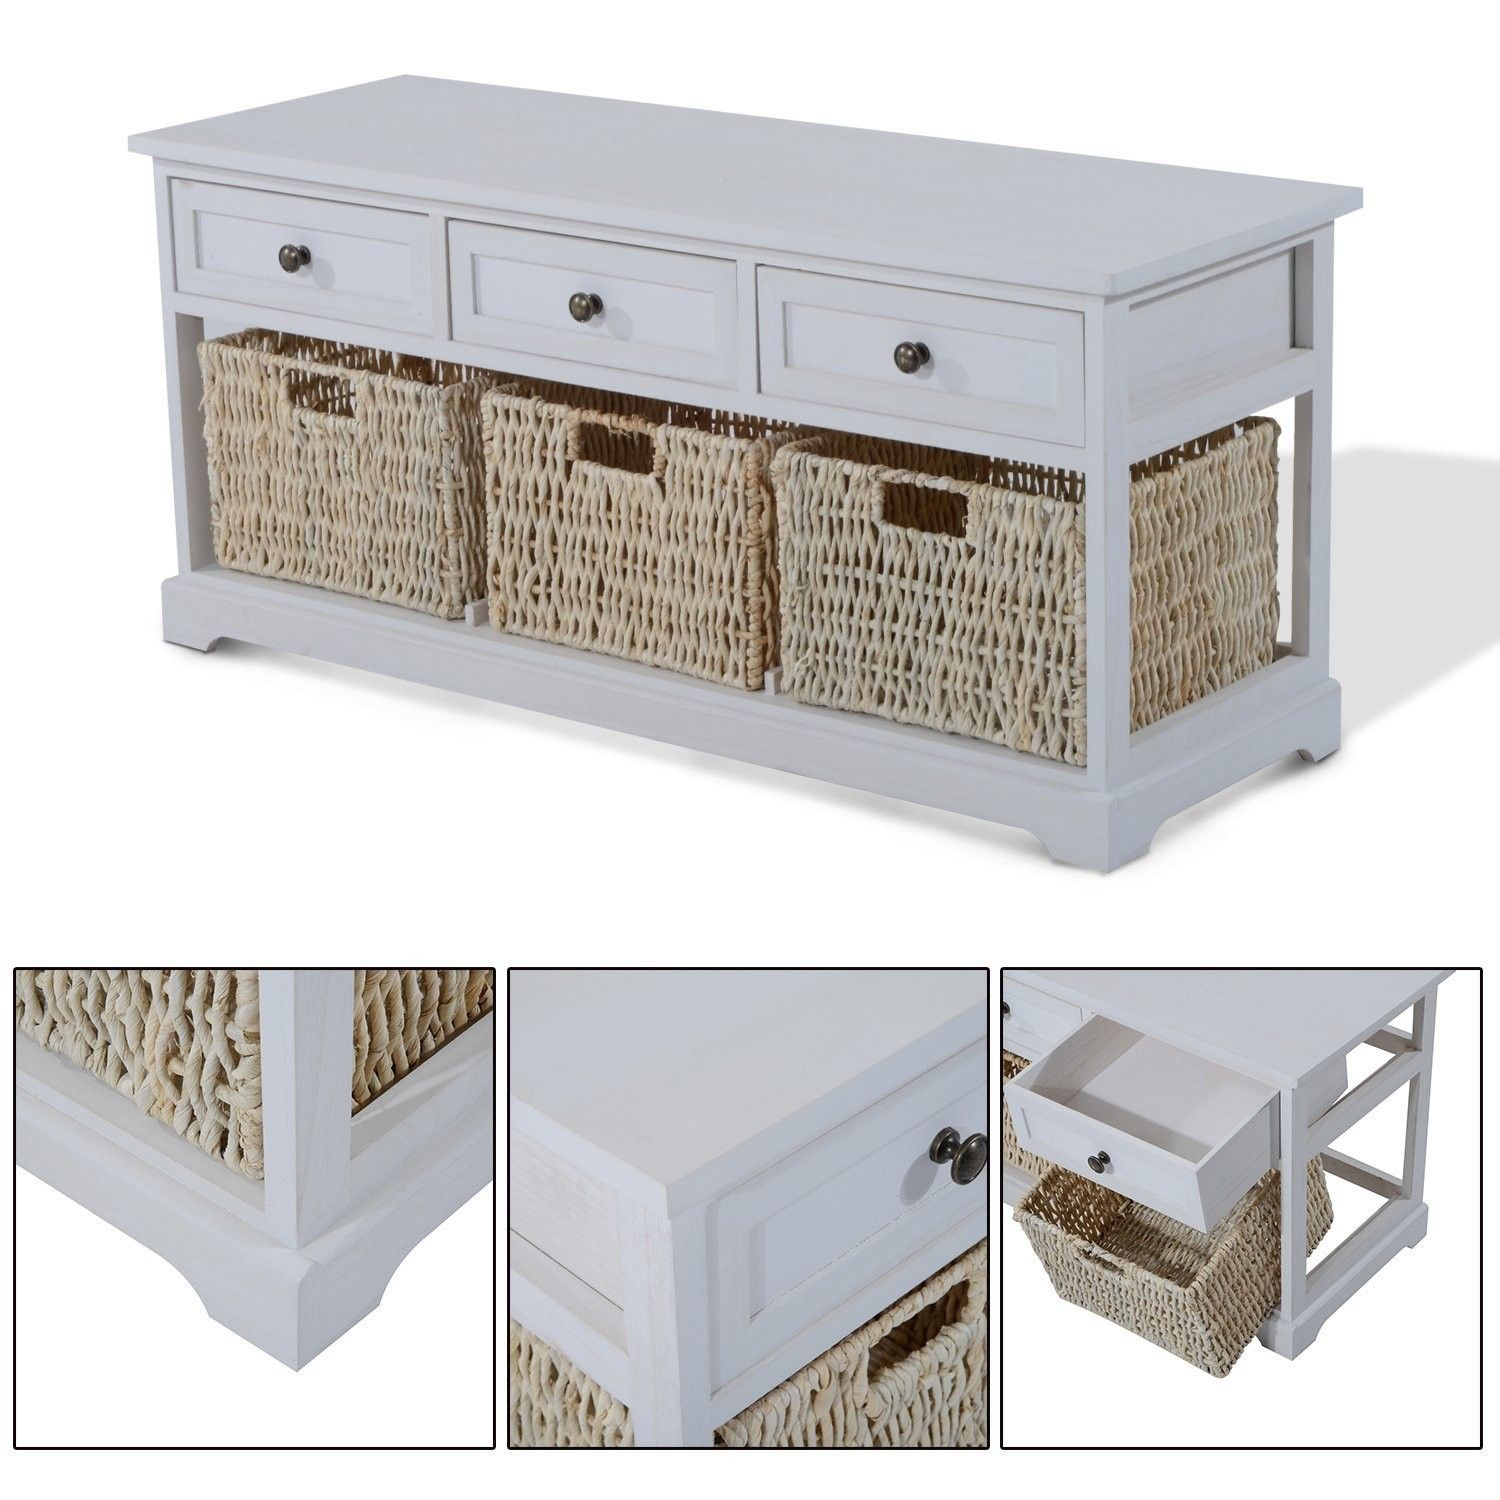 Wooden Coffee Table With Seagrass Wicker Storage Baskets Ideal Home Show Shop Sideboard Storage Wicker Baskets Storage